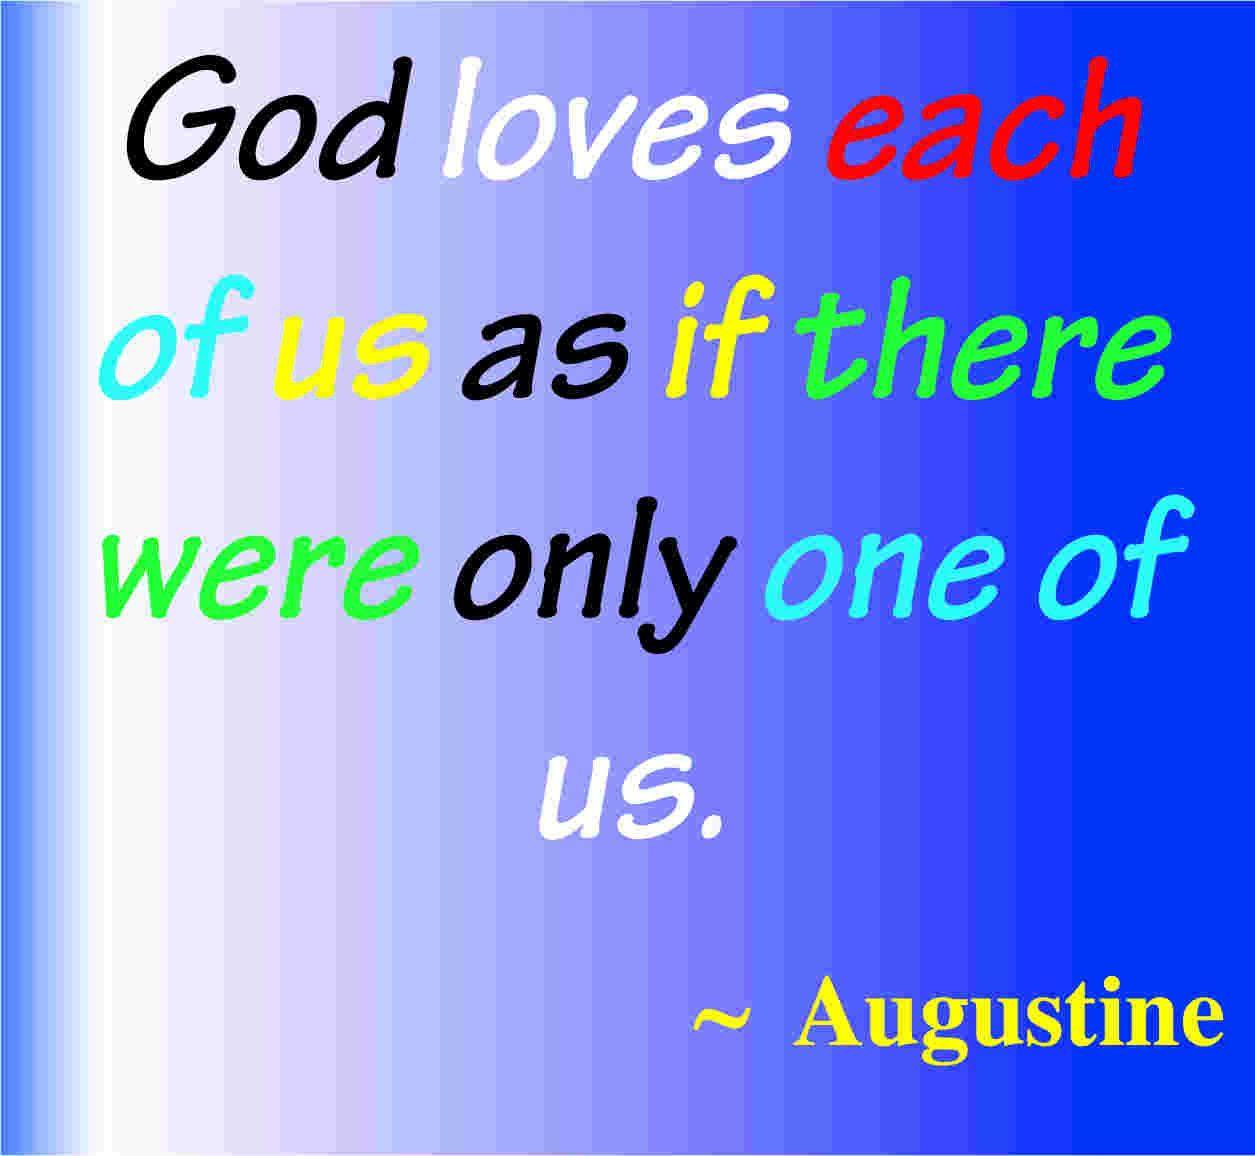 Love Quotes In The Bible 20 Inspirational Bible Verses About God's Love  Gratitude